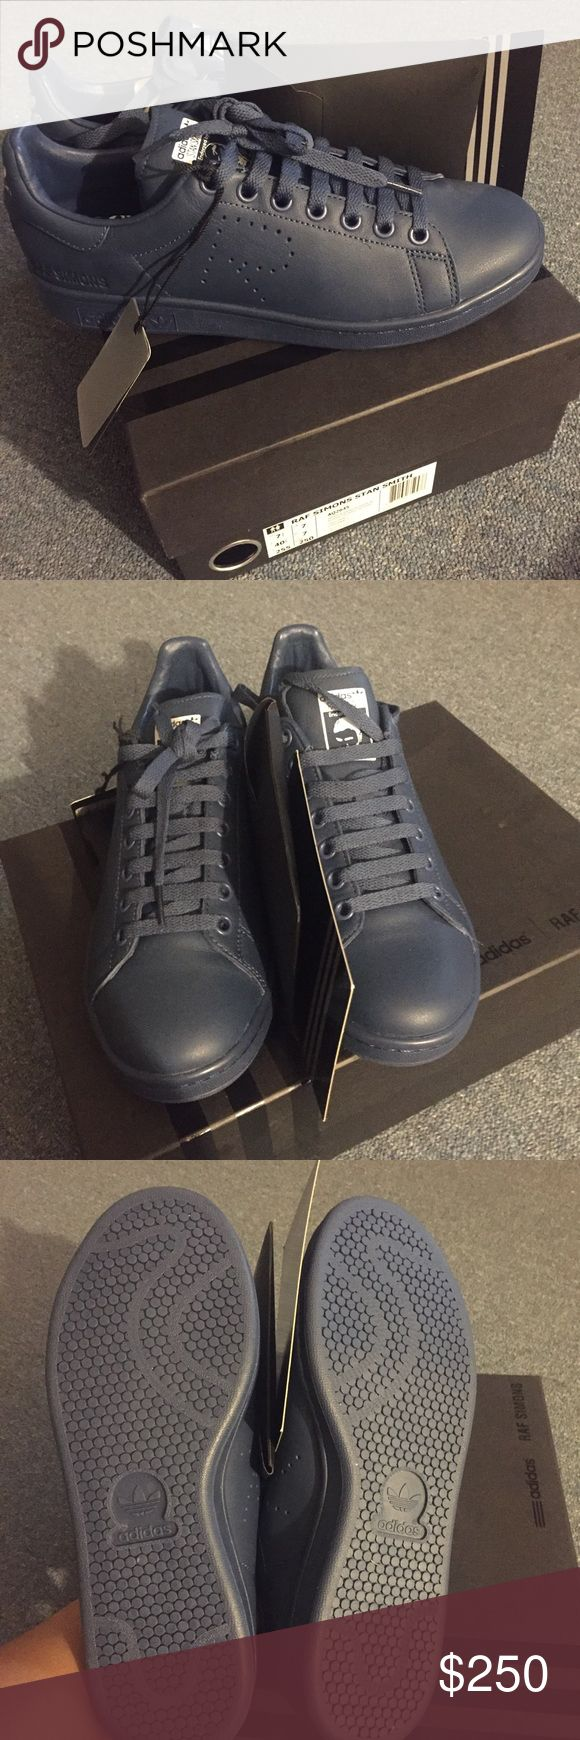 Raf Simons x Adidas Stan Smith Sneakers (Marine) 100 % authentic includes box, extra laces and card. size 7.5 mens which is 9.5 womens. in the color blue/blue marine retails $455 Raf Simons Shoes Sneakers